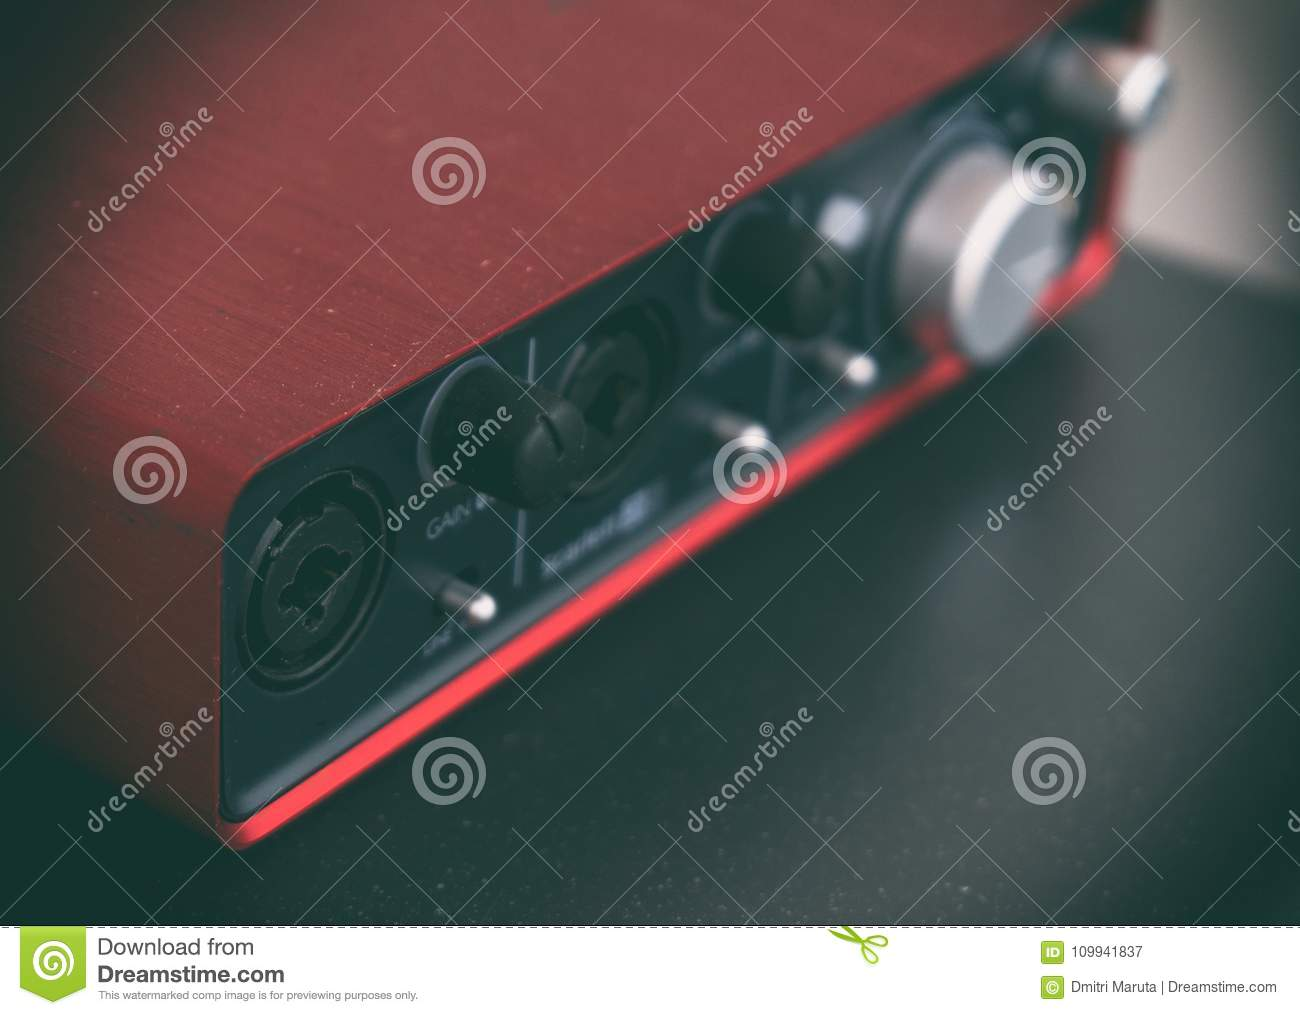 Professional Portable Red Sound Card  Stock Image - Image of switch